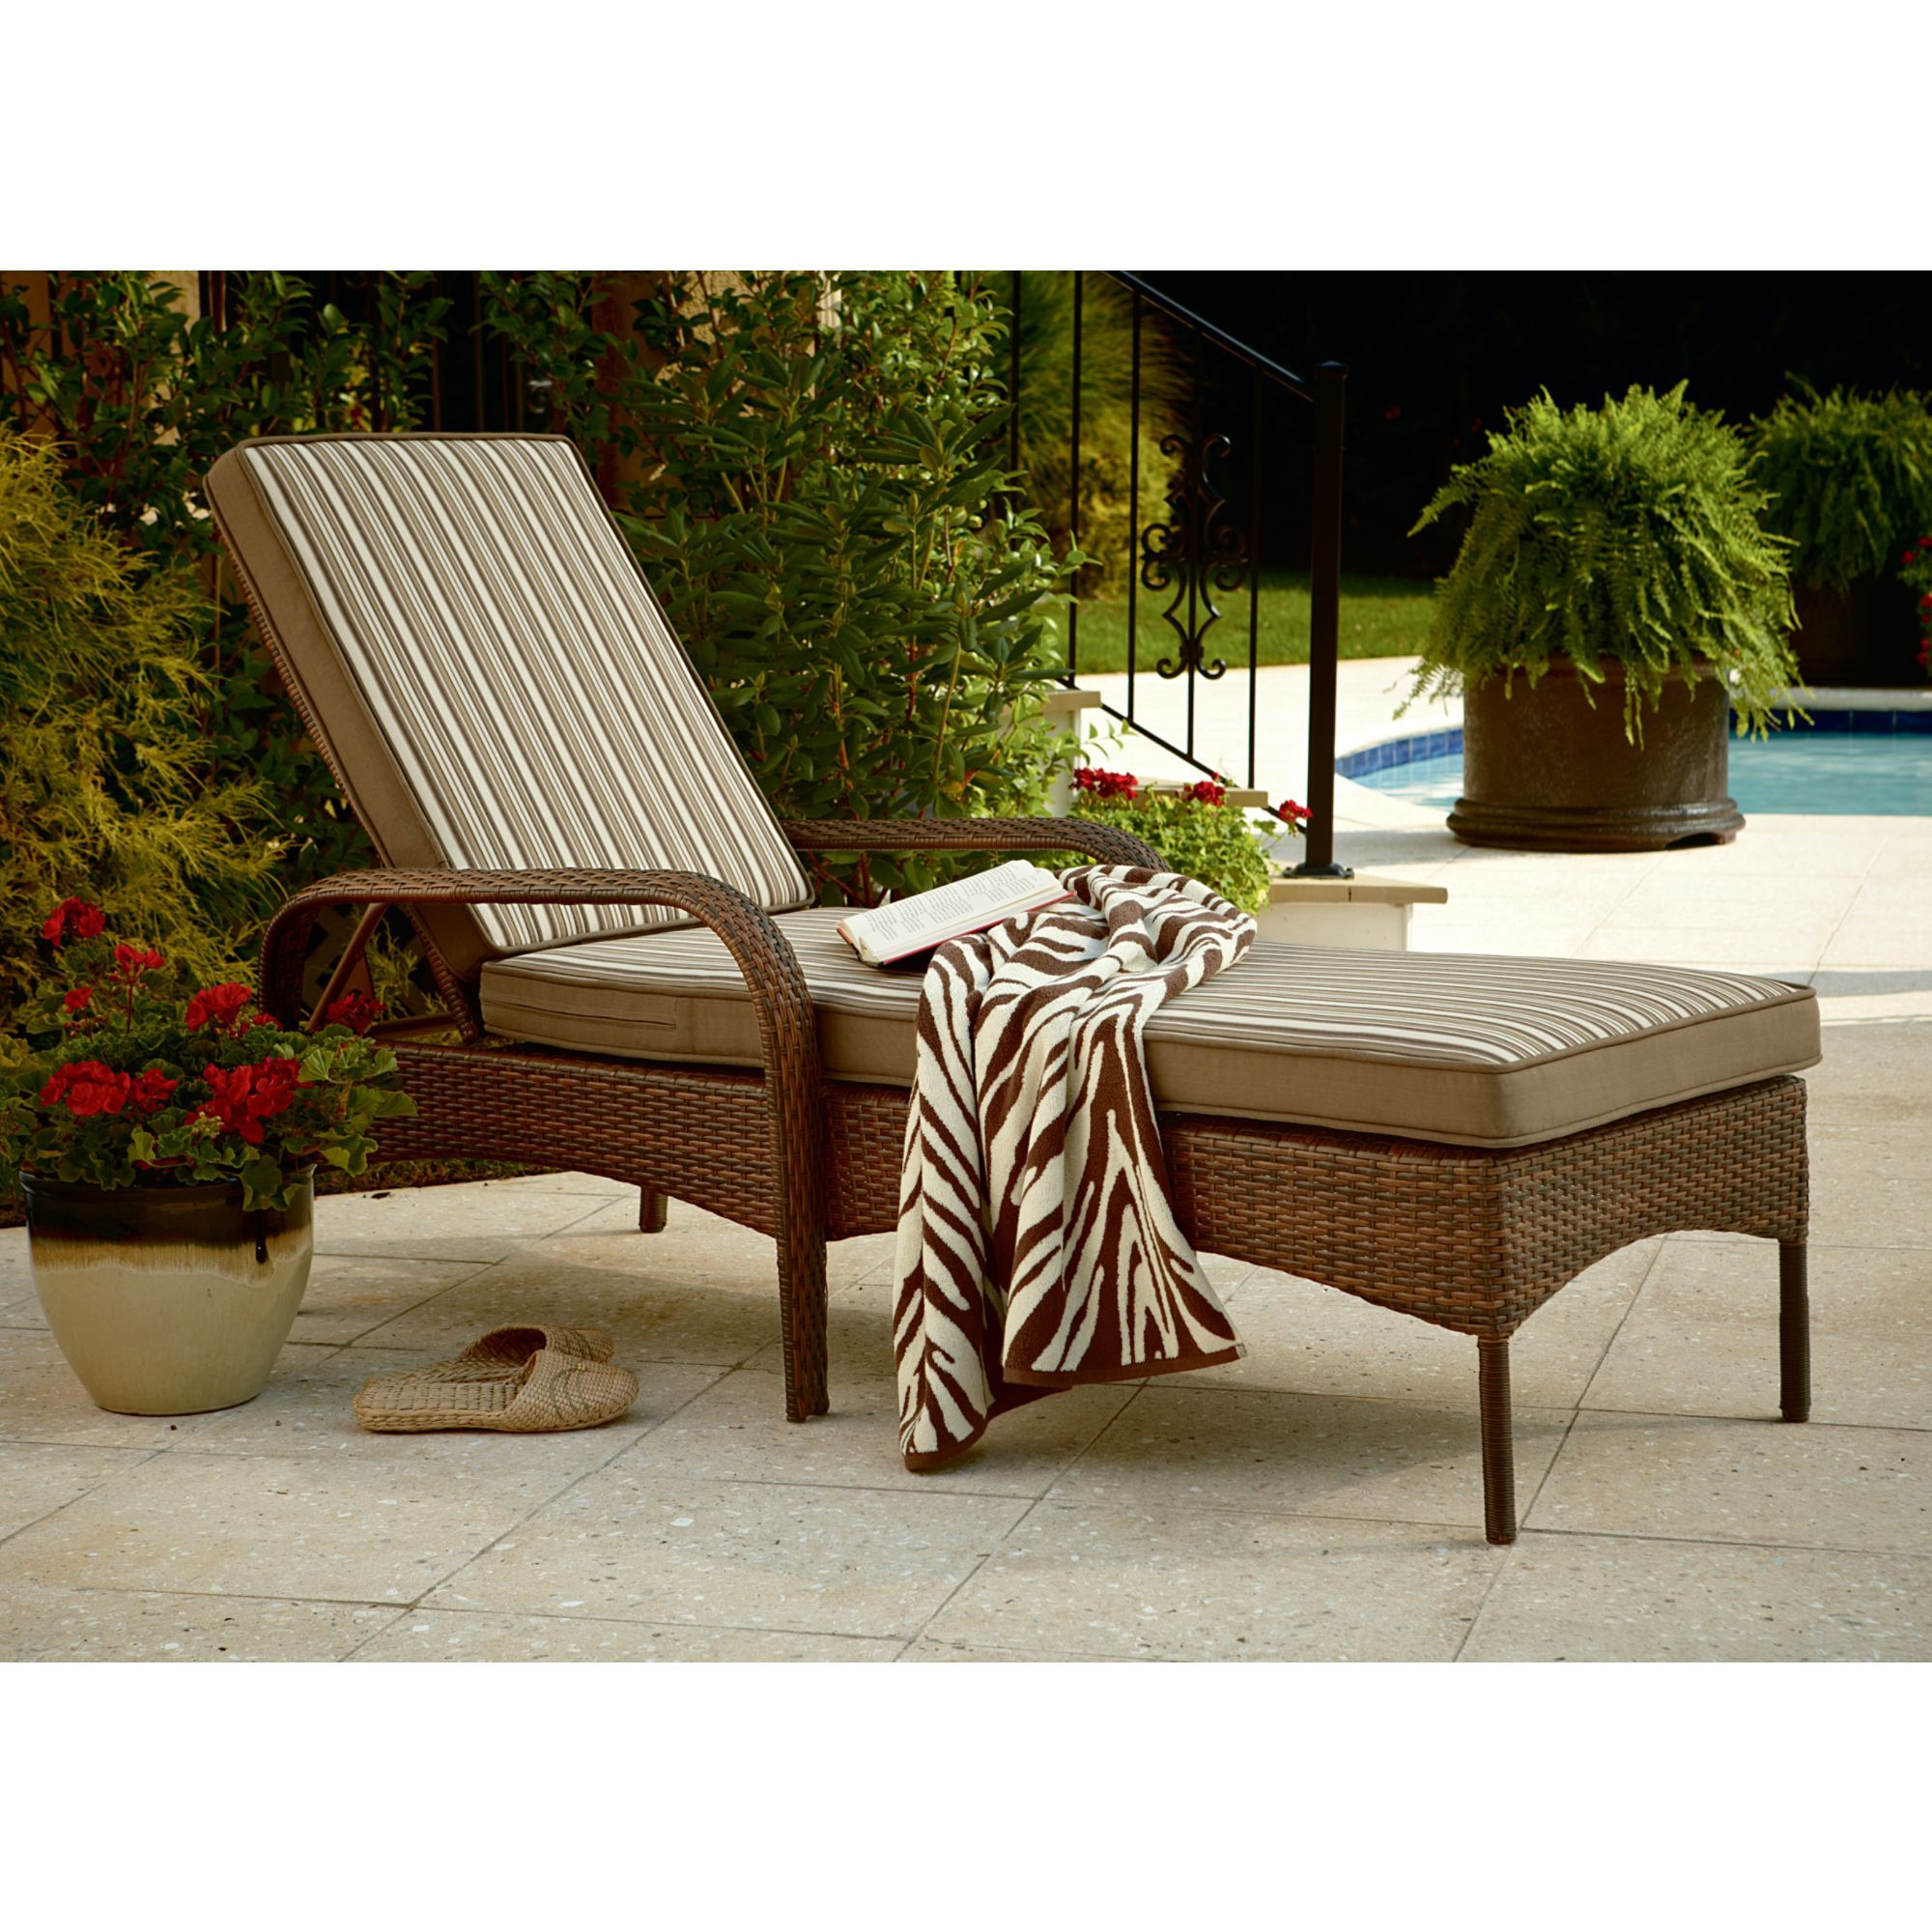 Attractive Mayfield Vintage Wicker Chaise Lounge: Relax In Style With Sears